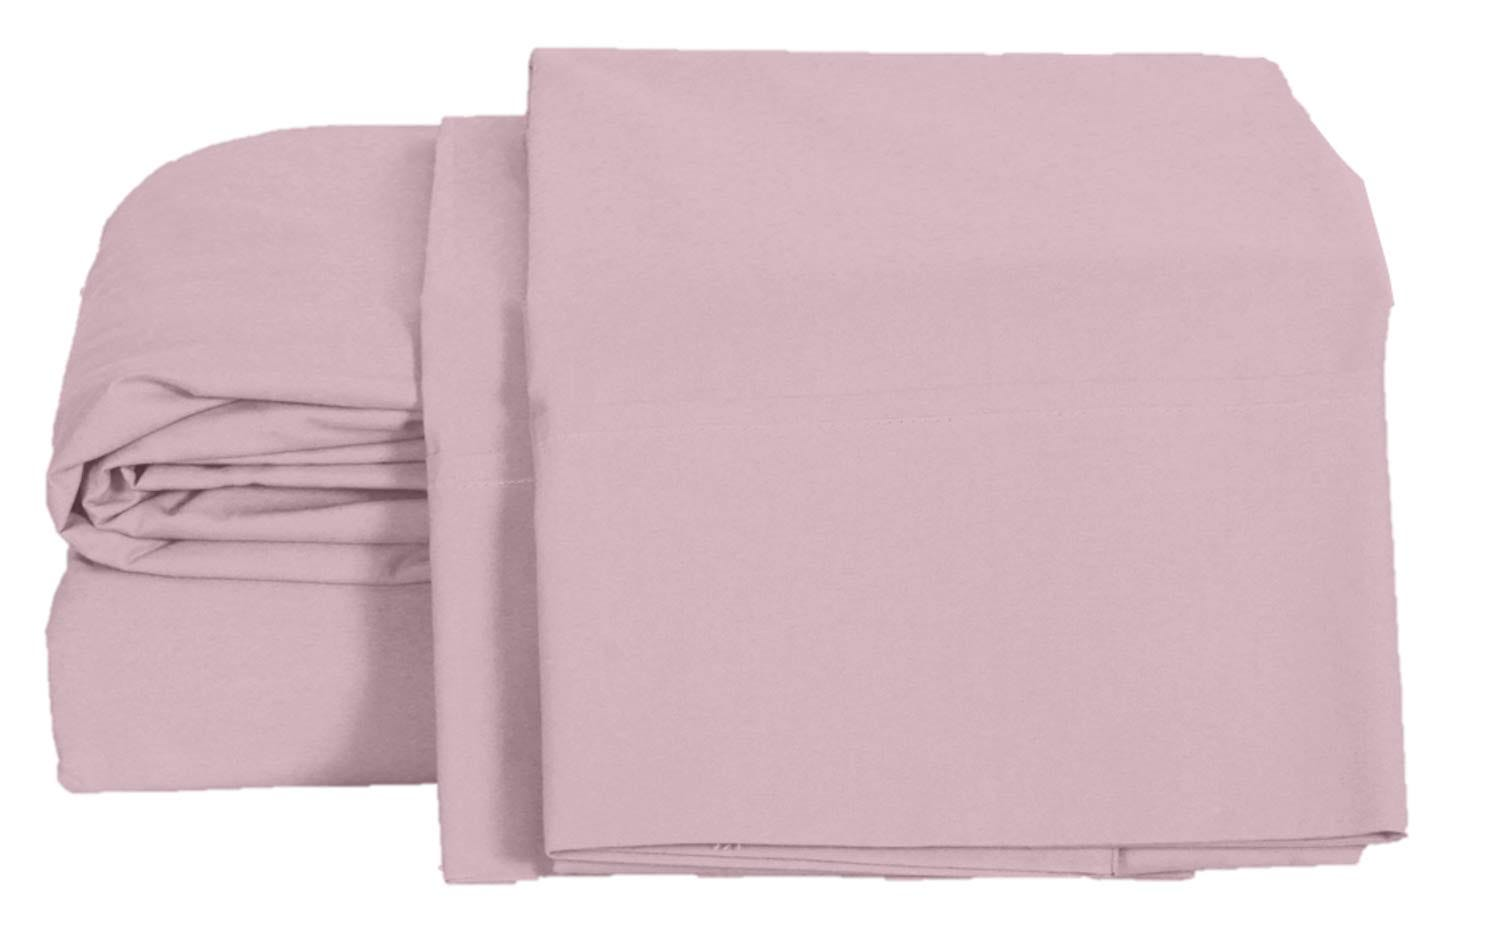 Percale sheets with a low thread count are much more breathable than some expensive alternatives.